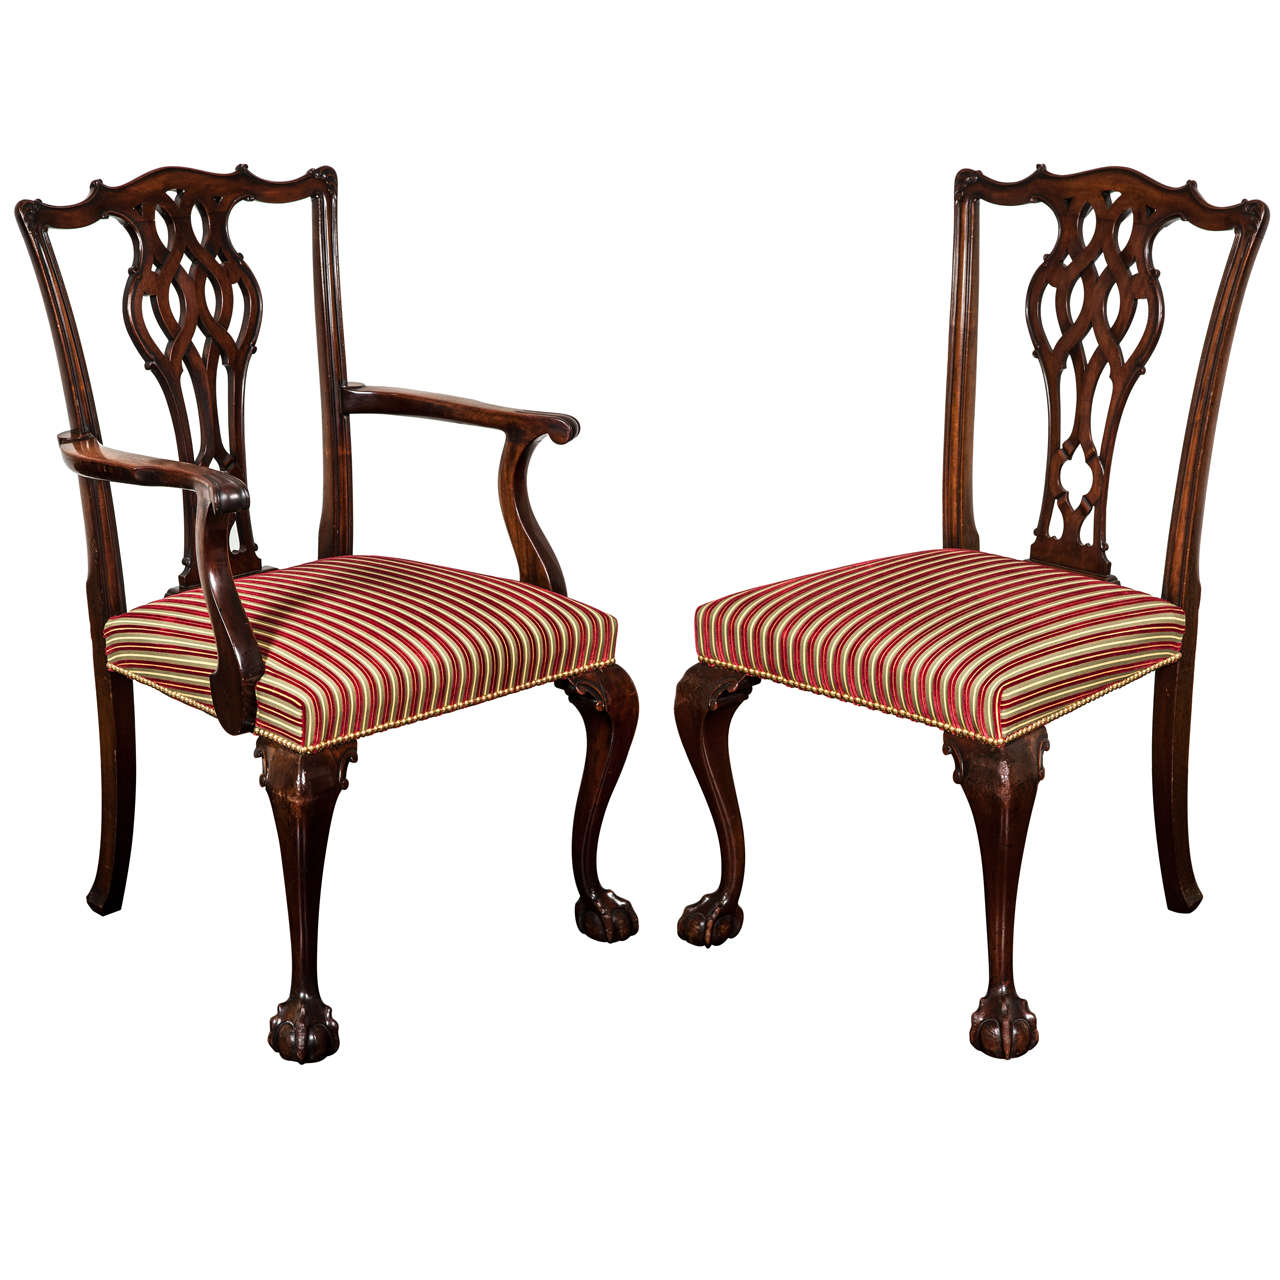 Set Of 28 Dining Chairs In The Chippendale Taste Circa